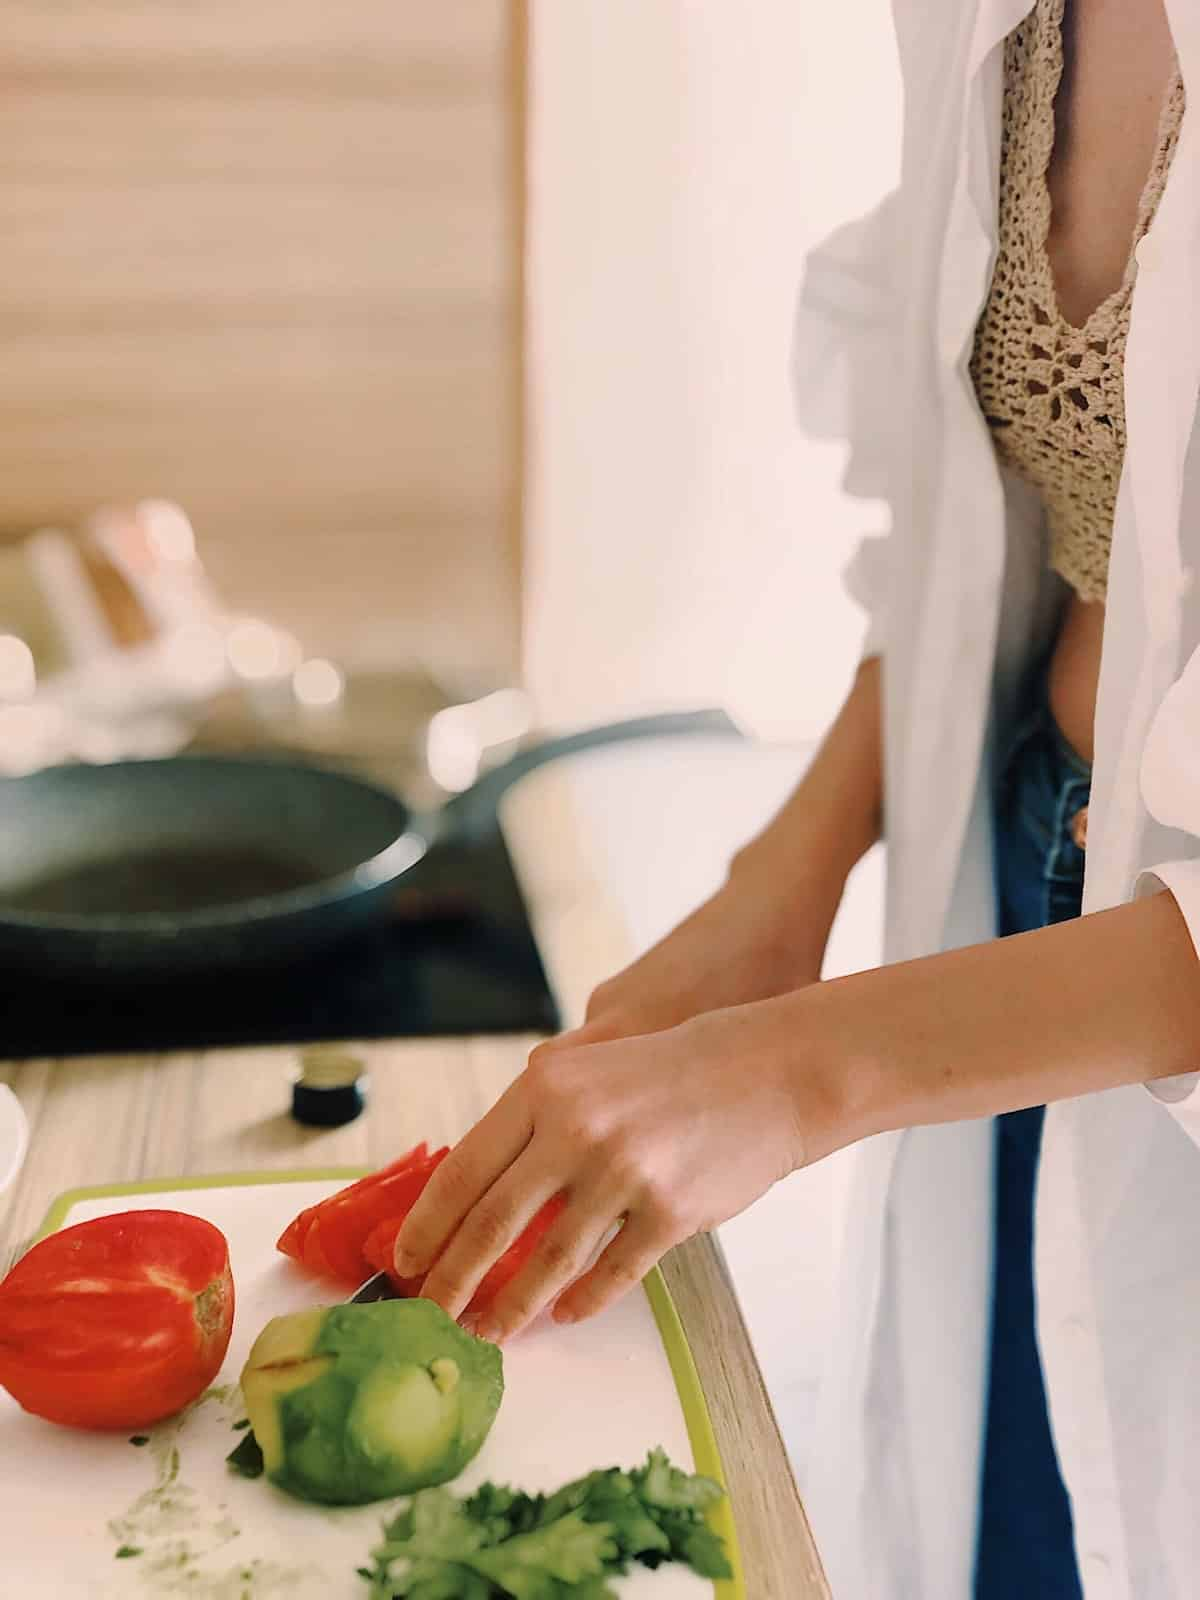 woman chopping up vegetables in the kitchen